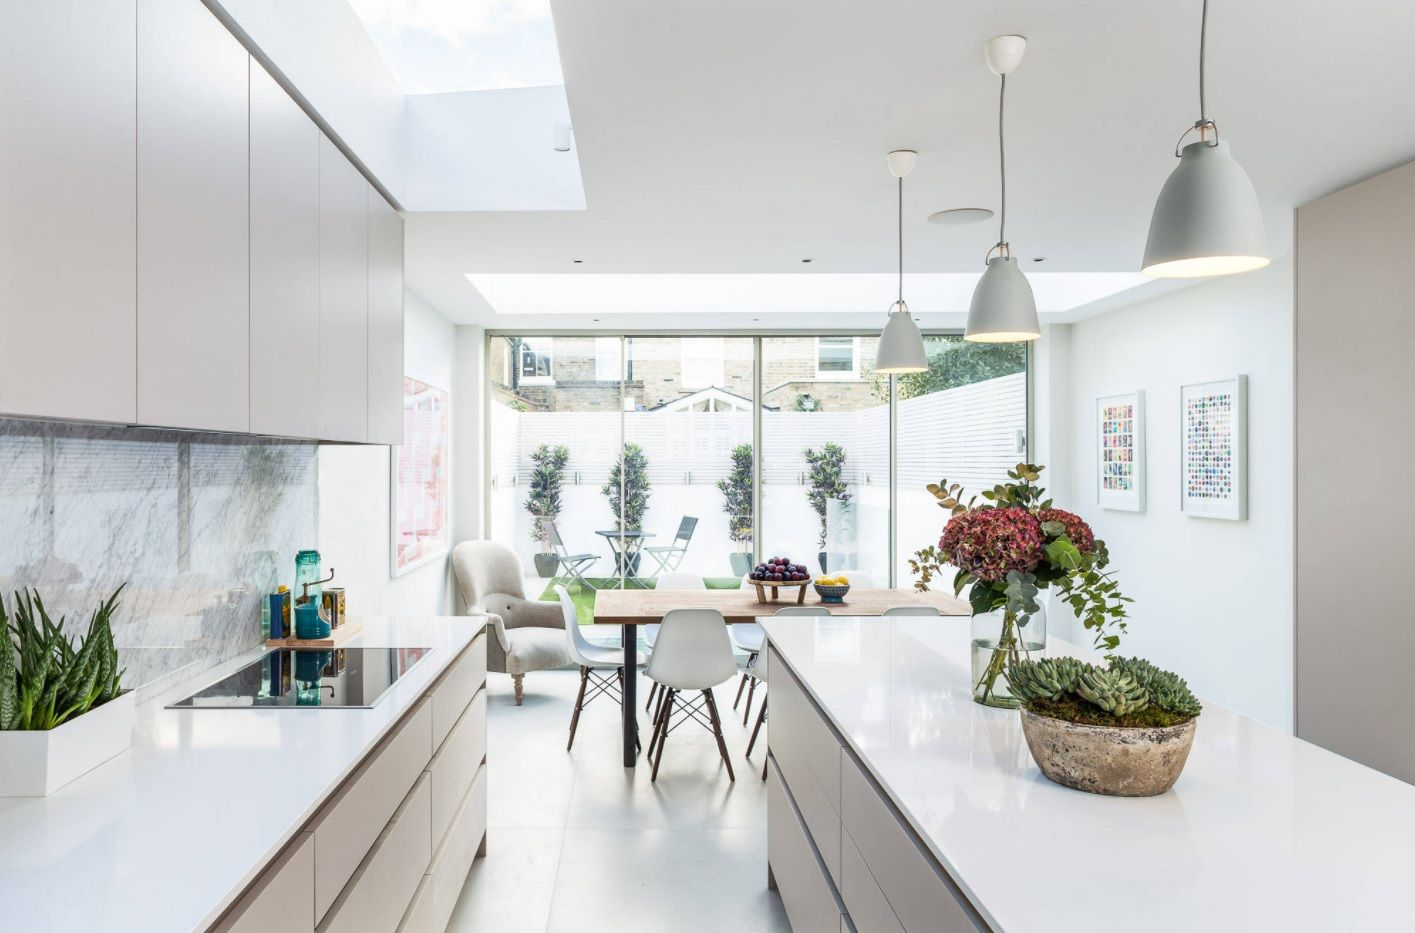 Bespoke Kitchen Interior Photos & Design Ideas. Absolutely white idyll in the modern natural light lit kitchen in the cottage